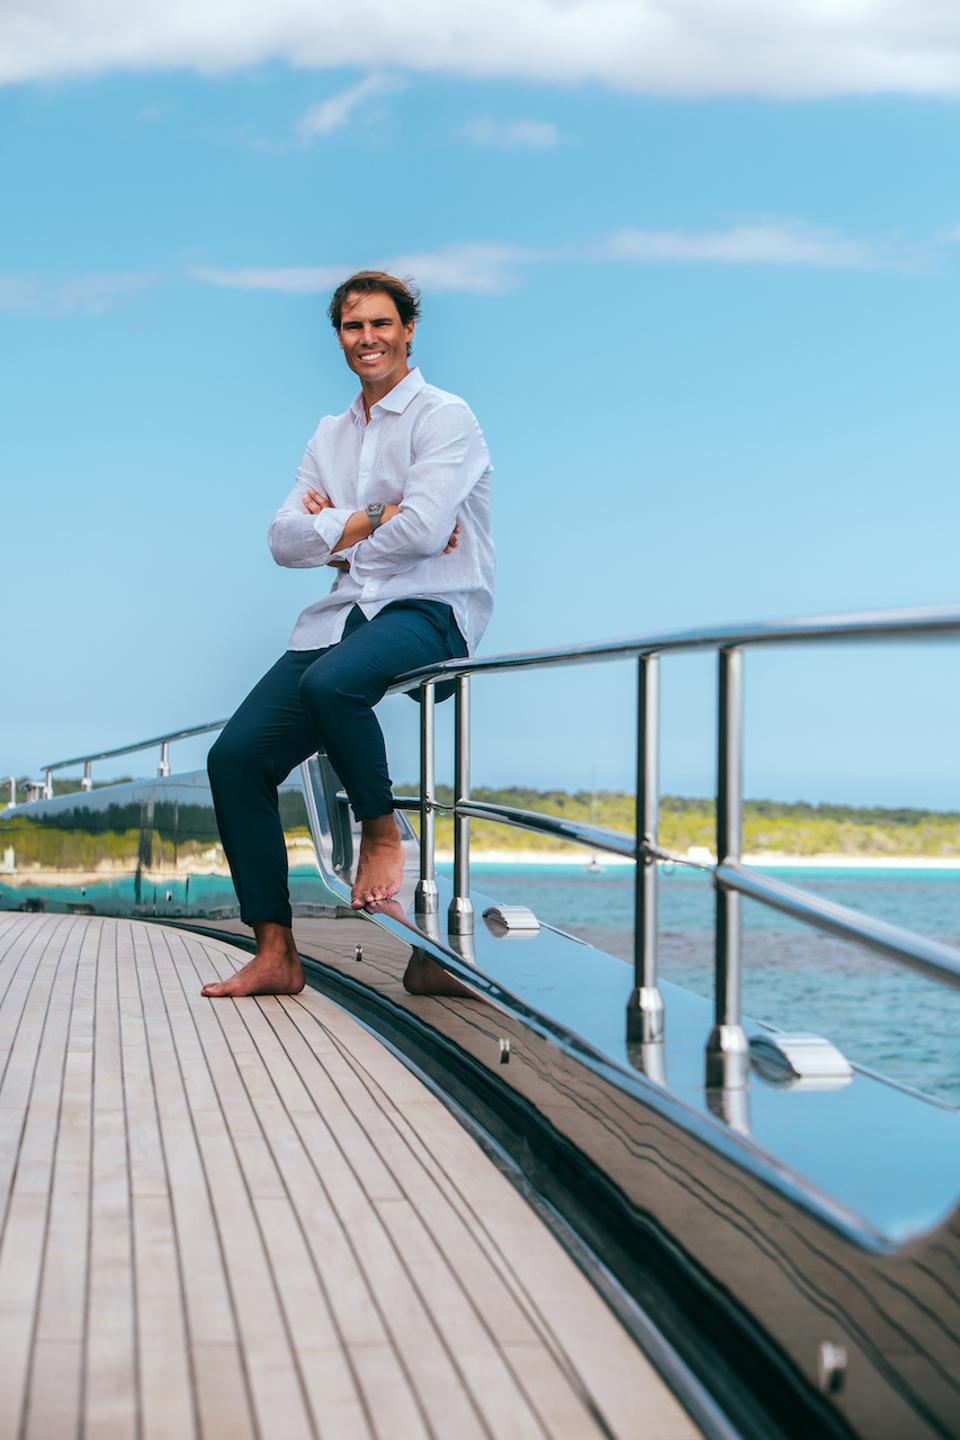 Superyacht Influencer Interview Rafael Nadal Talks Tennis And How His New Yacht Helps His Game